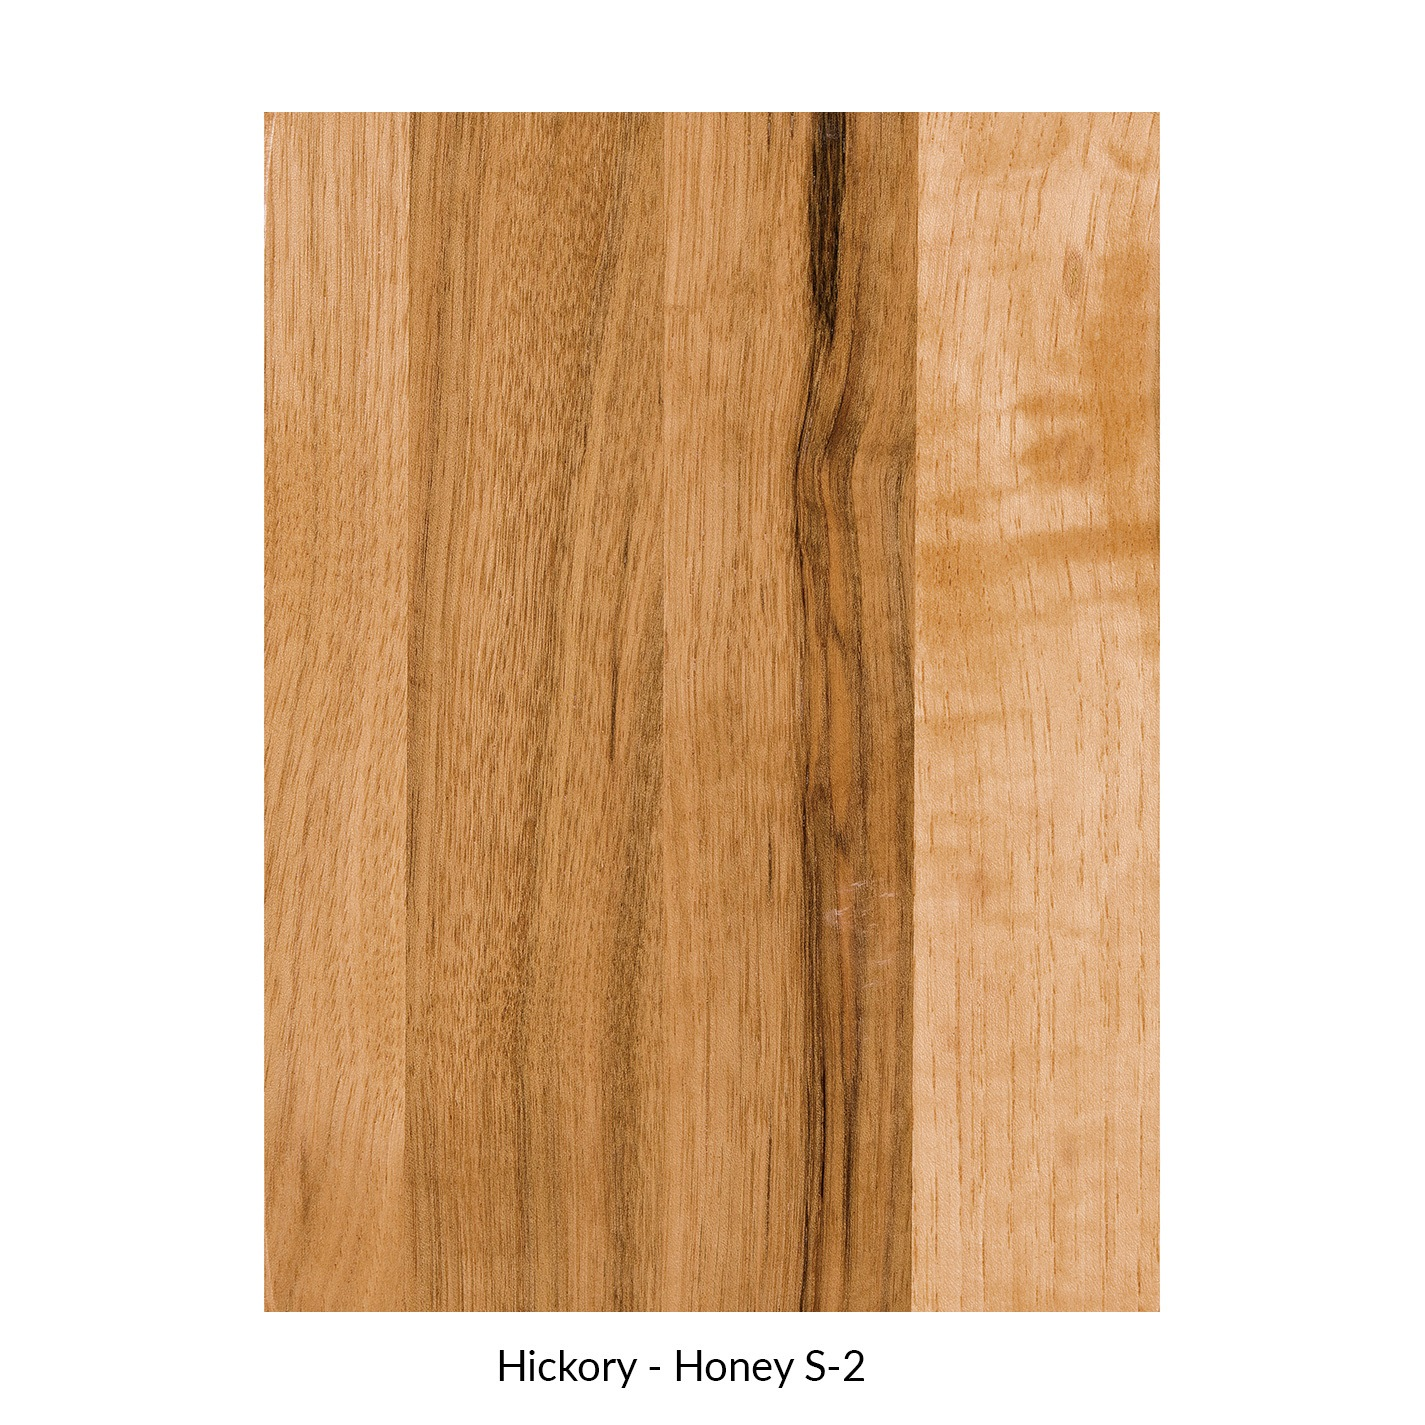 spectrum-hickory-honey-s-2.jpg